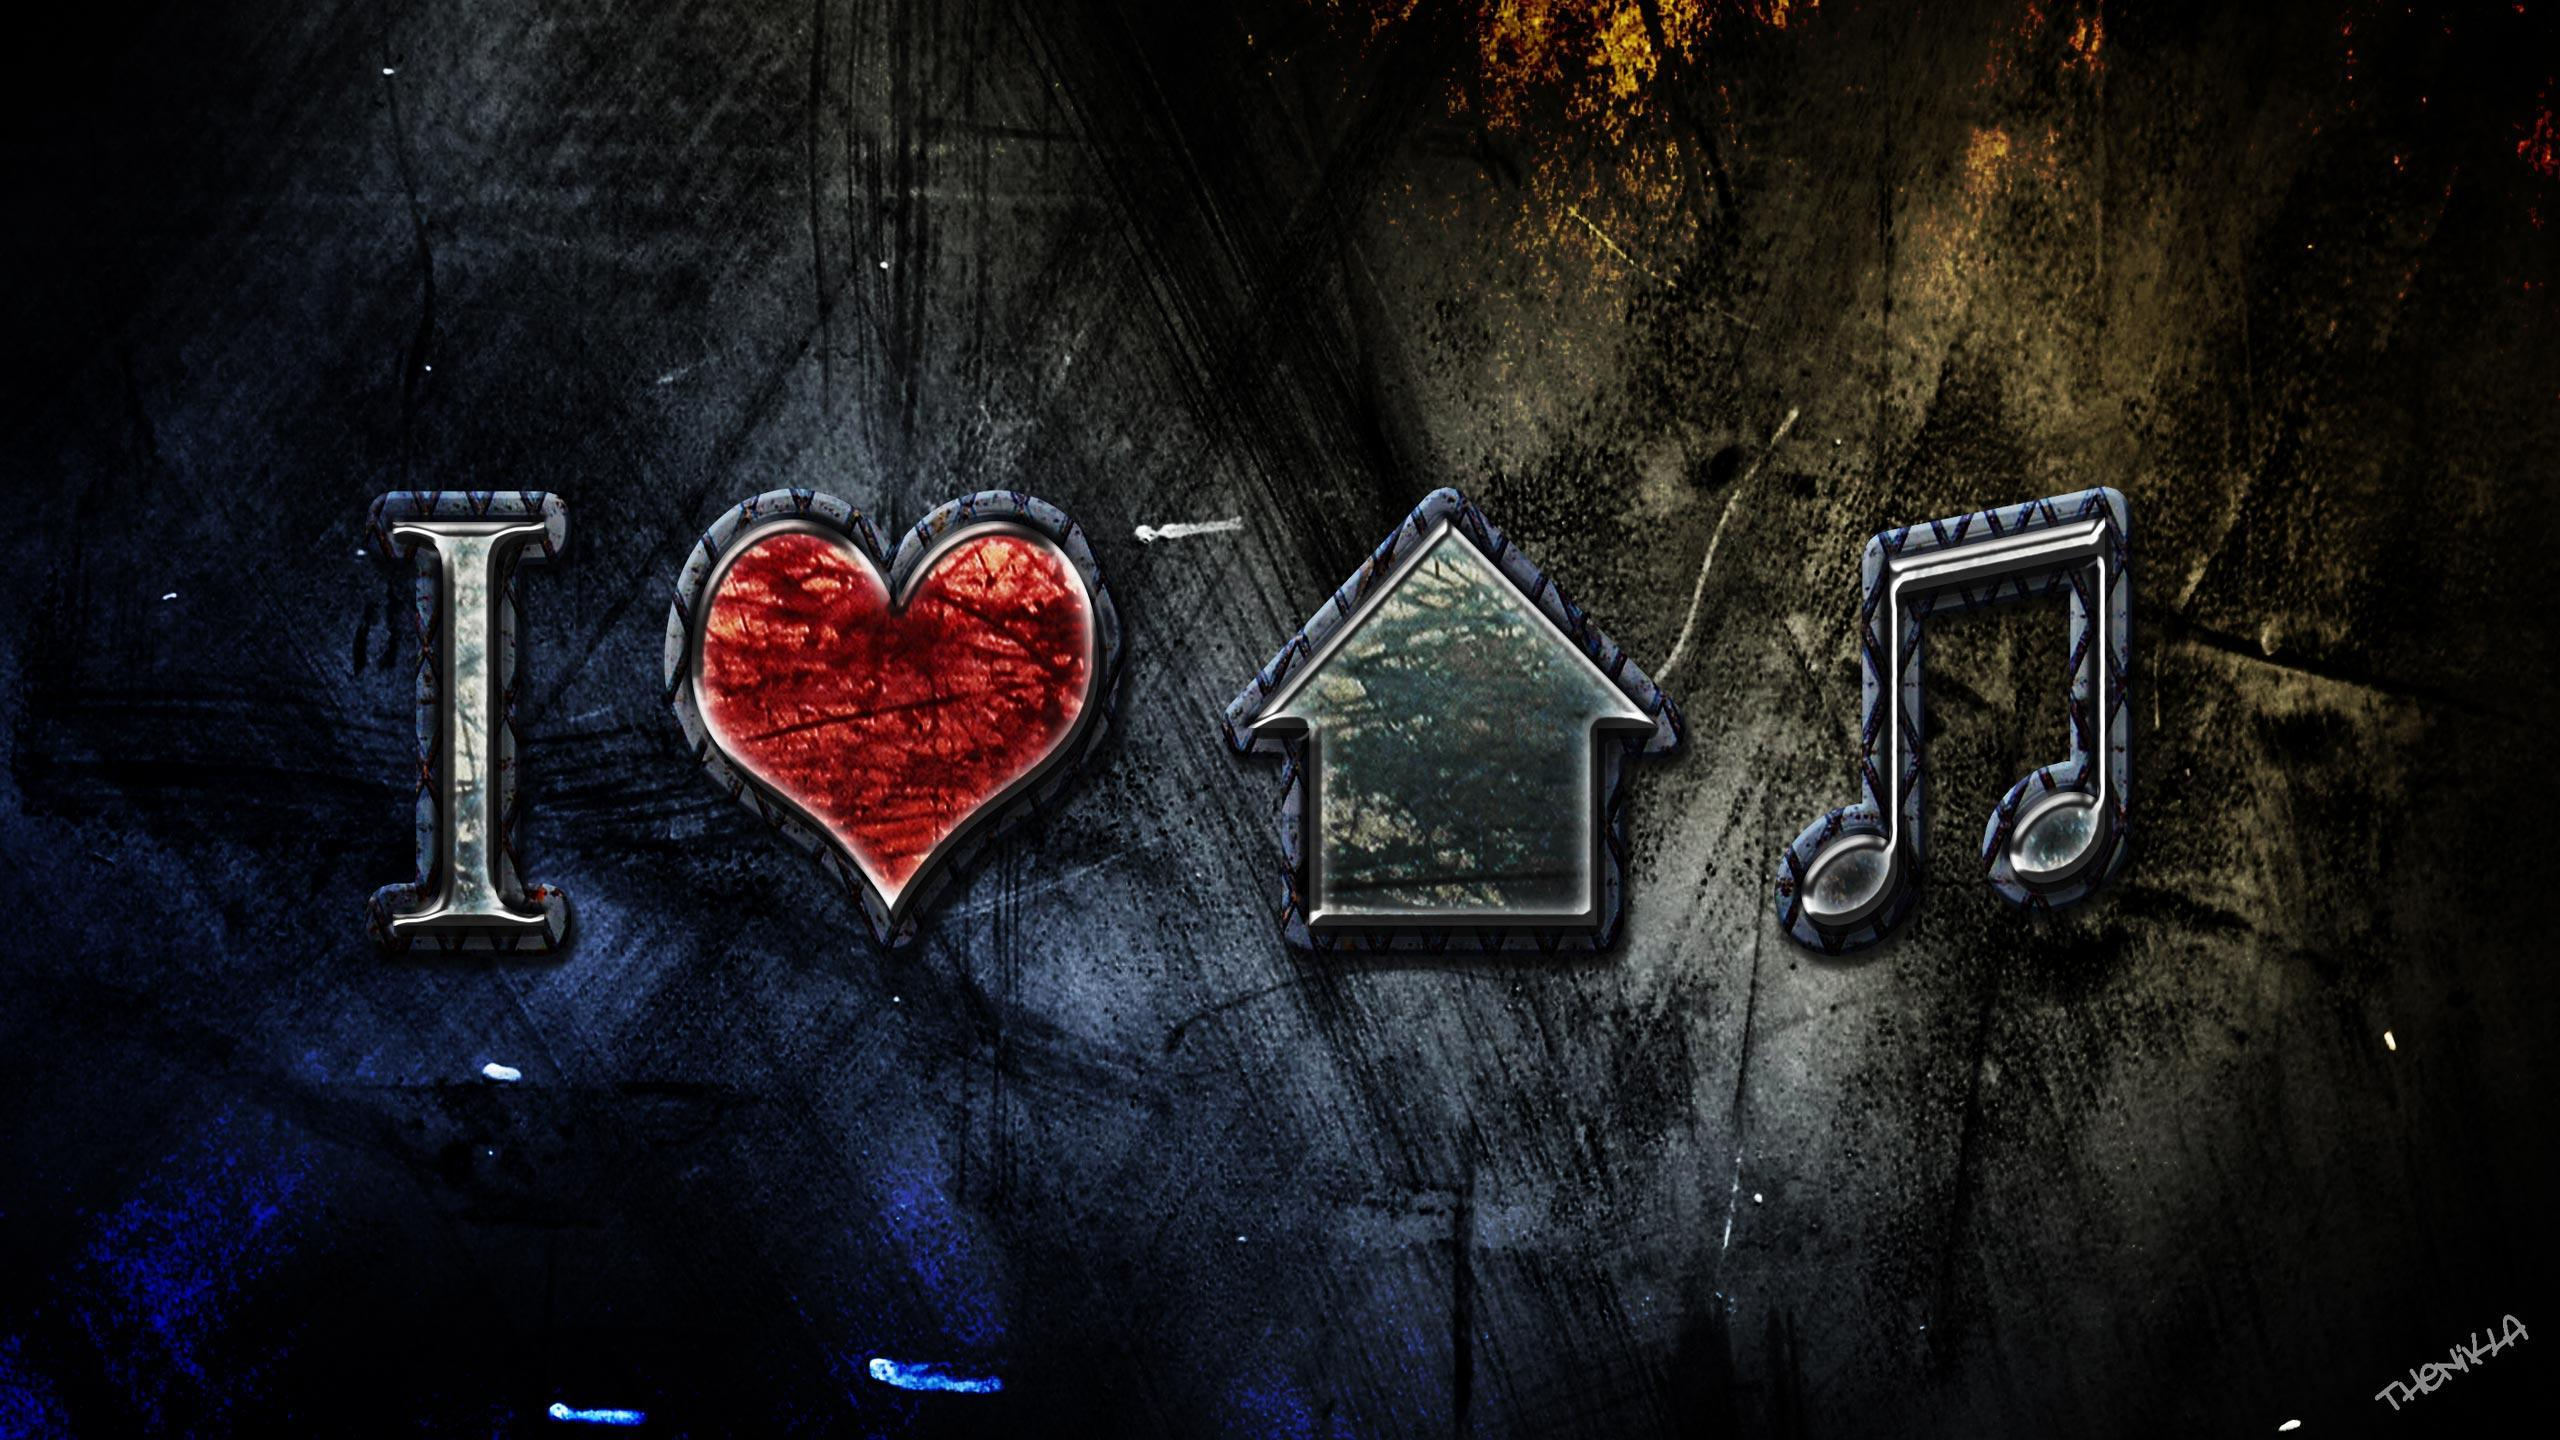 Love Wallpaper Hd Size : House Music Wallpapers - Wallpaper cave